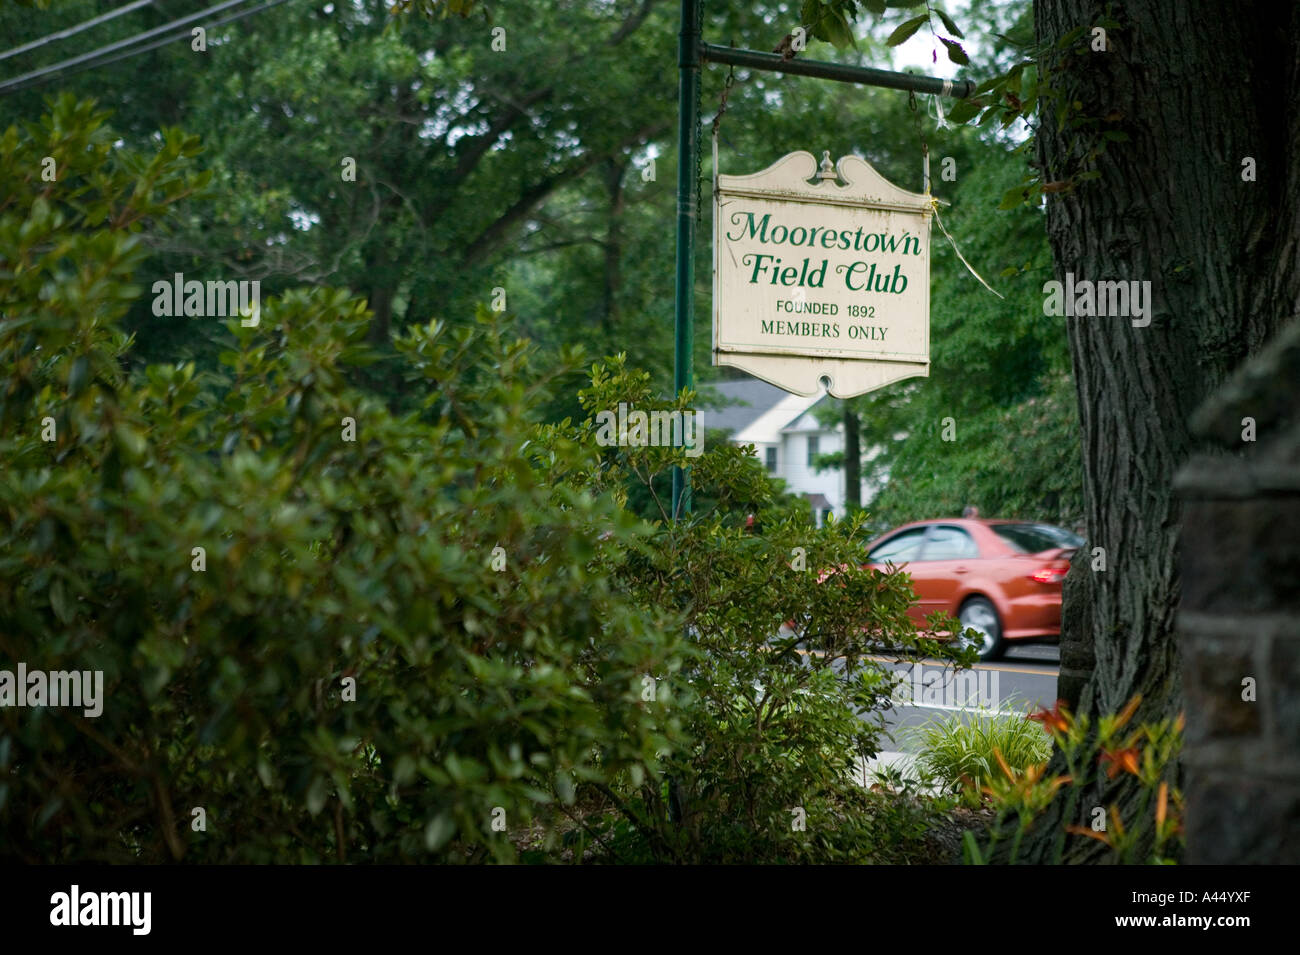 View Of A Sign At The Entrance To Members Only Moorestown Field Club In New Jersey USA July 2005